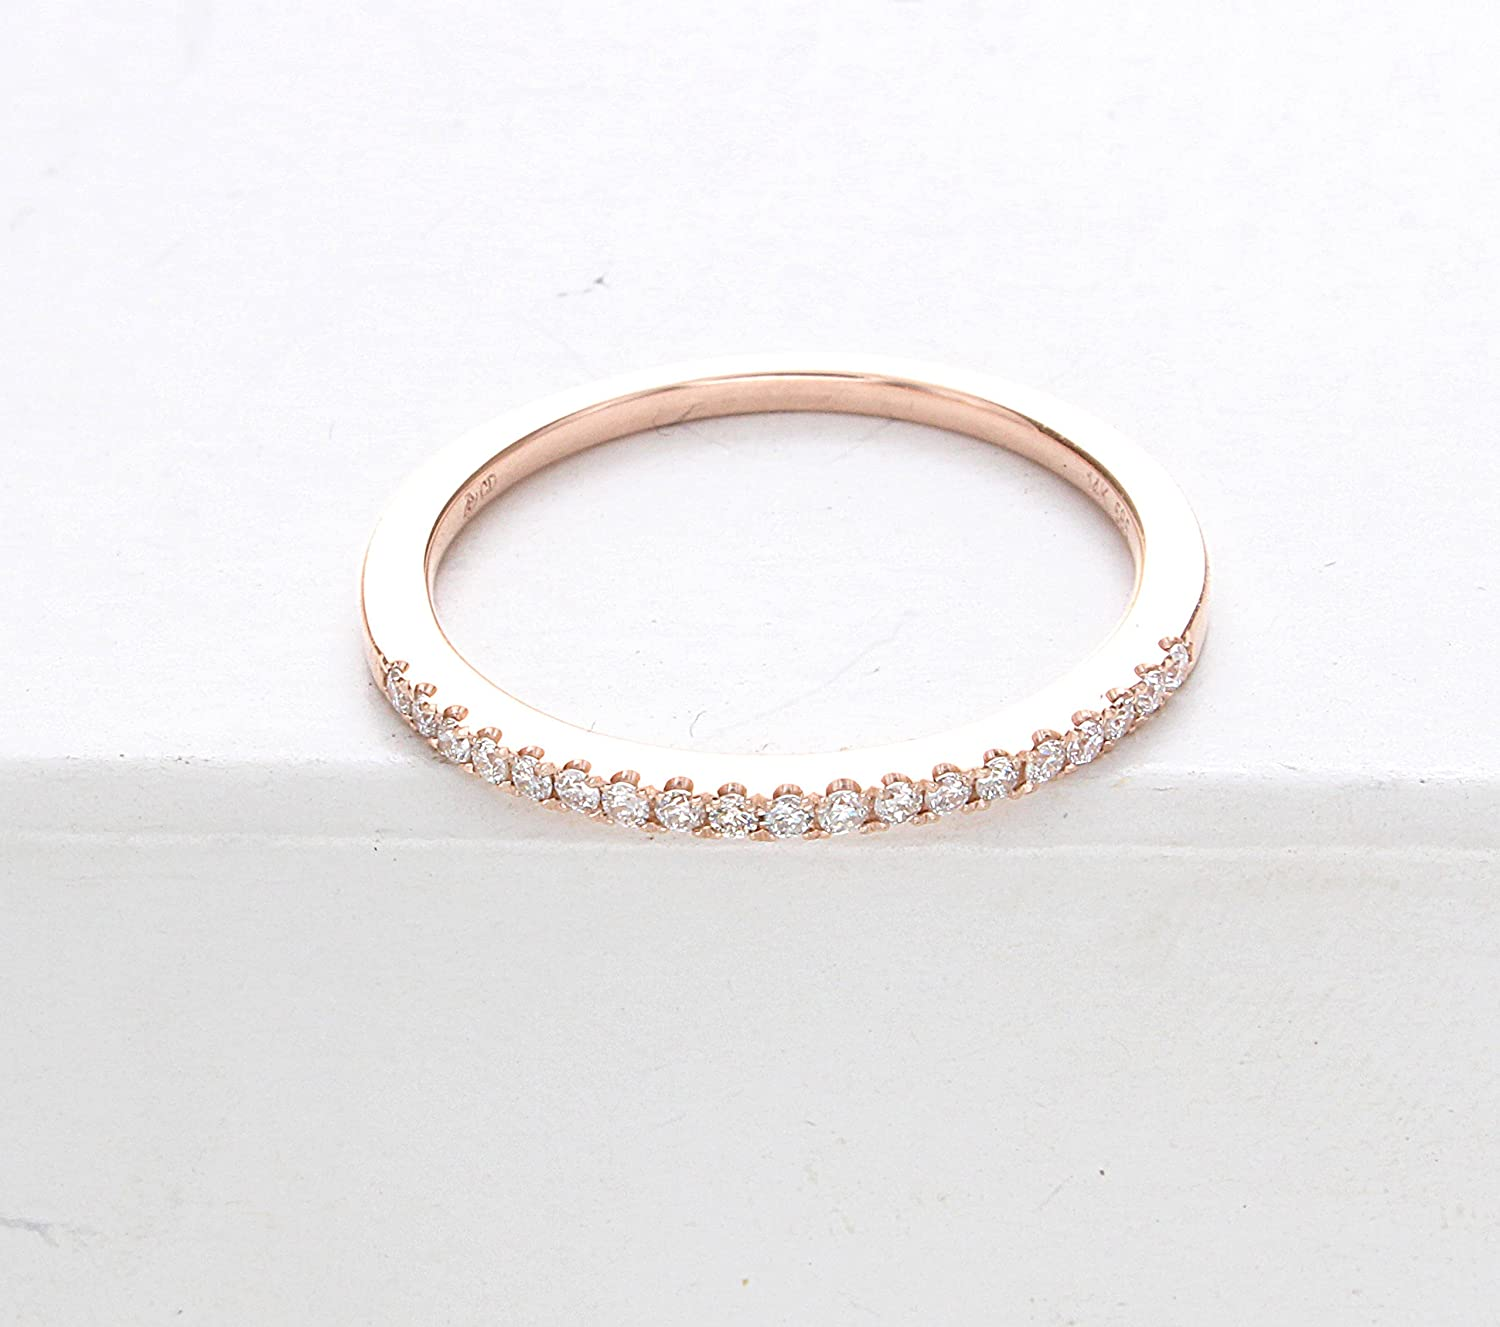 stackable ring three rose around rings curve diamond thin k band gold elegant oval dainty design bands